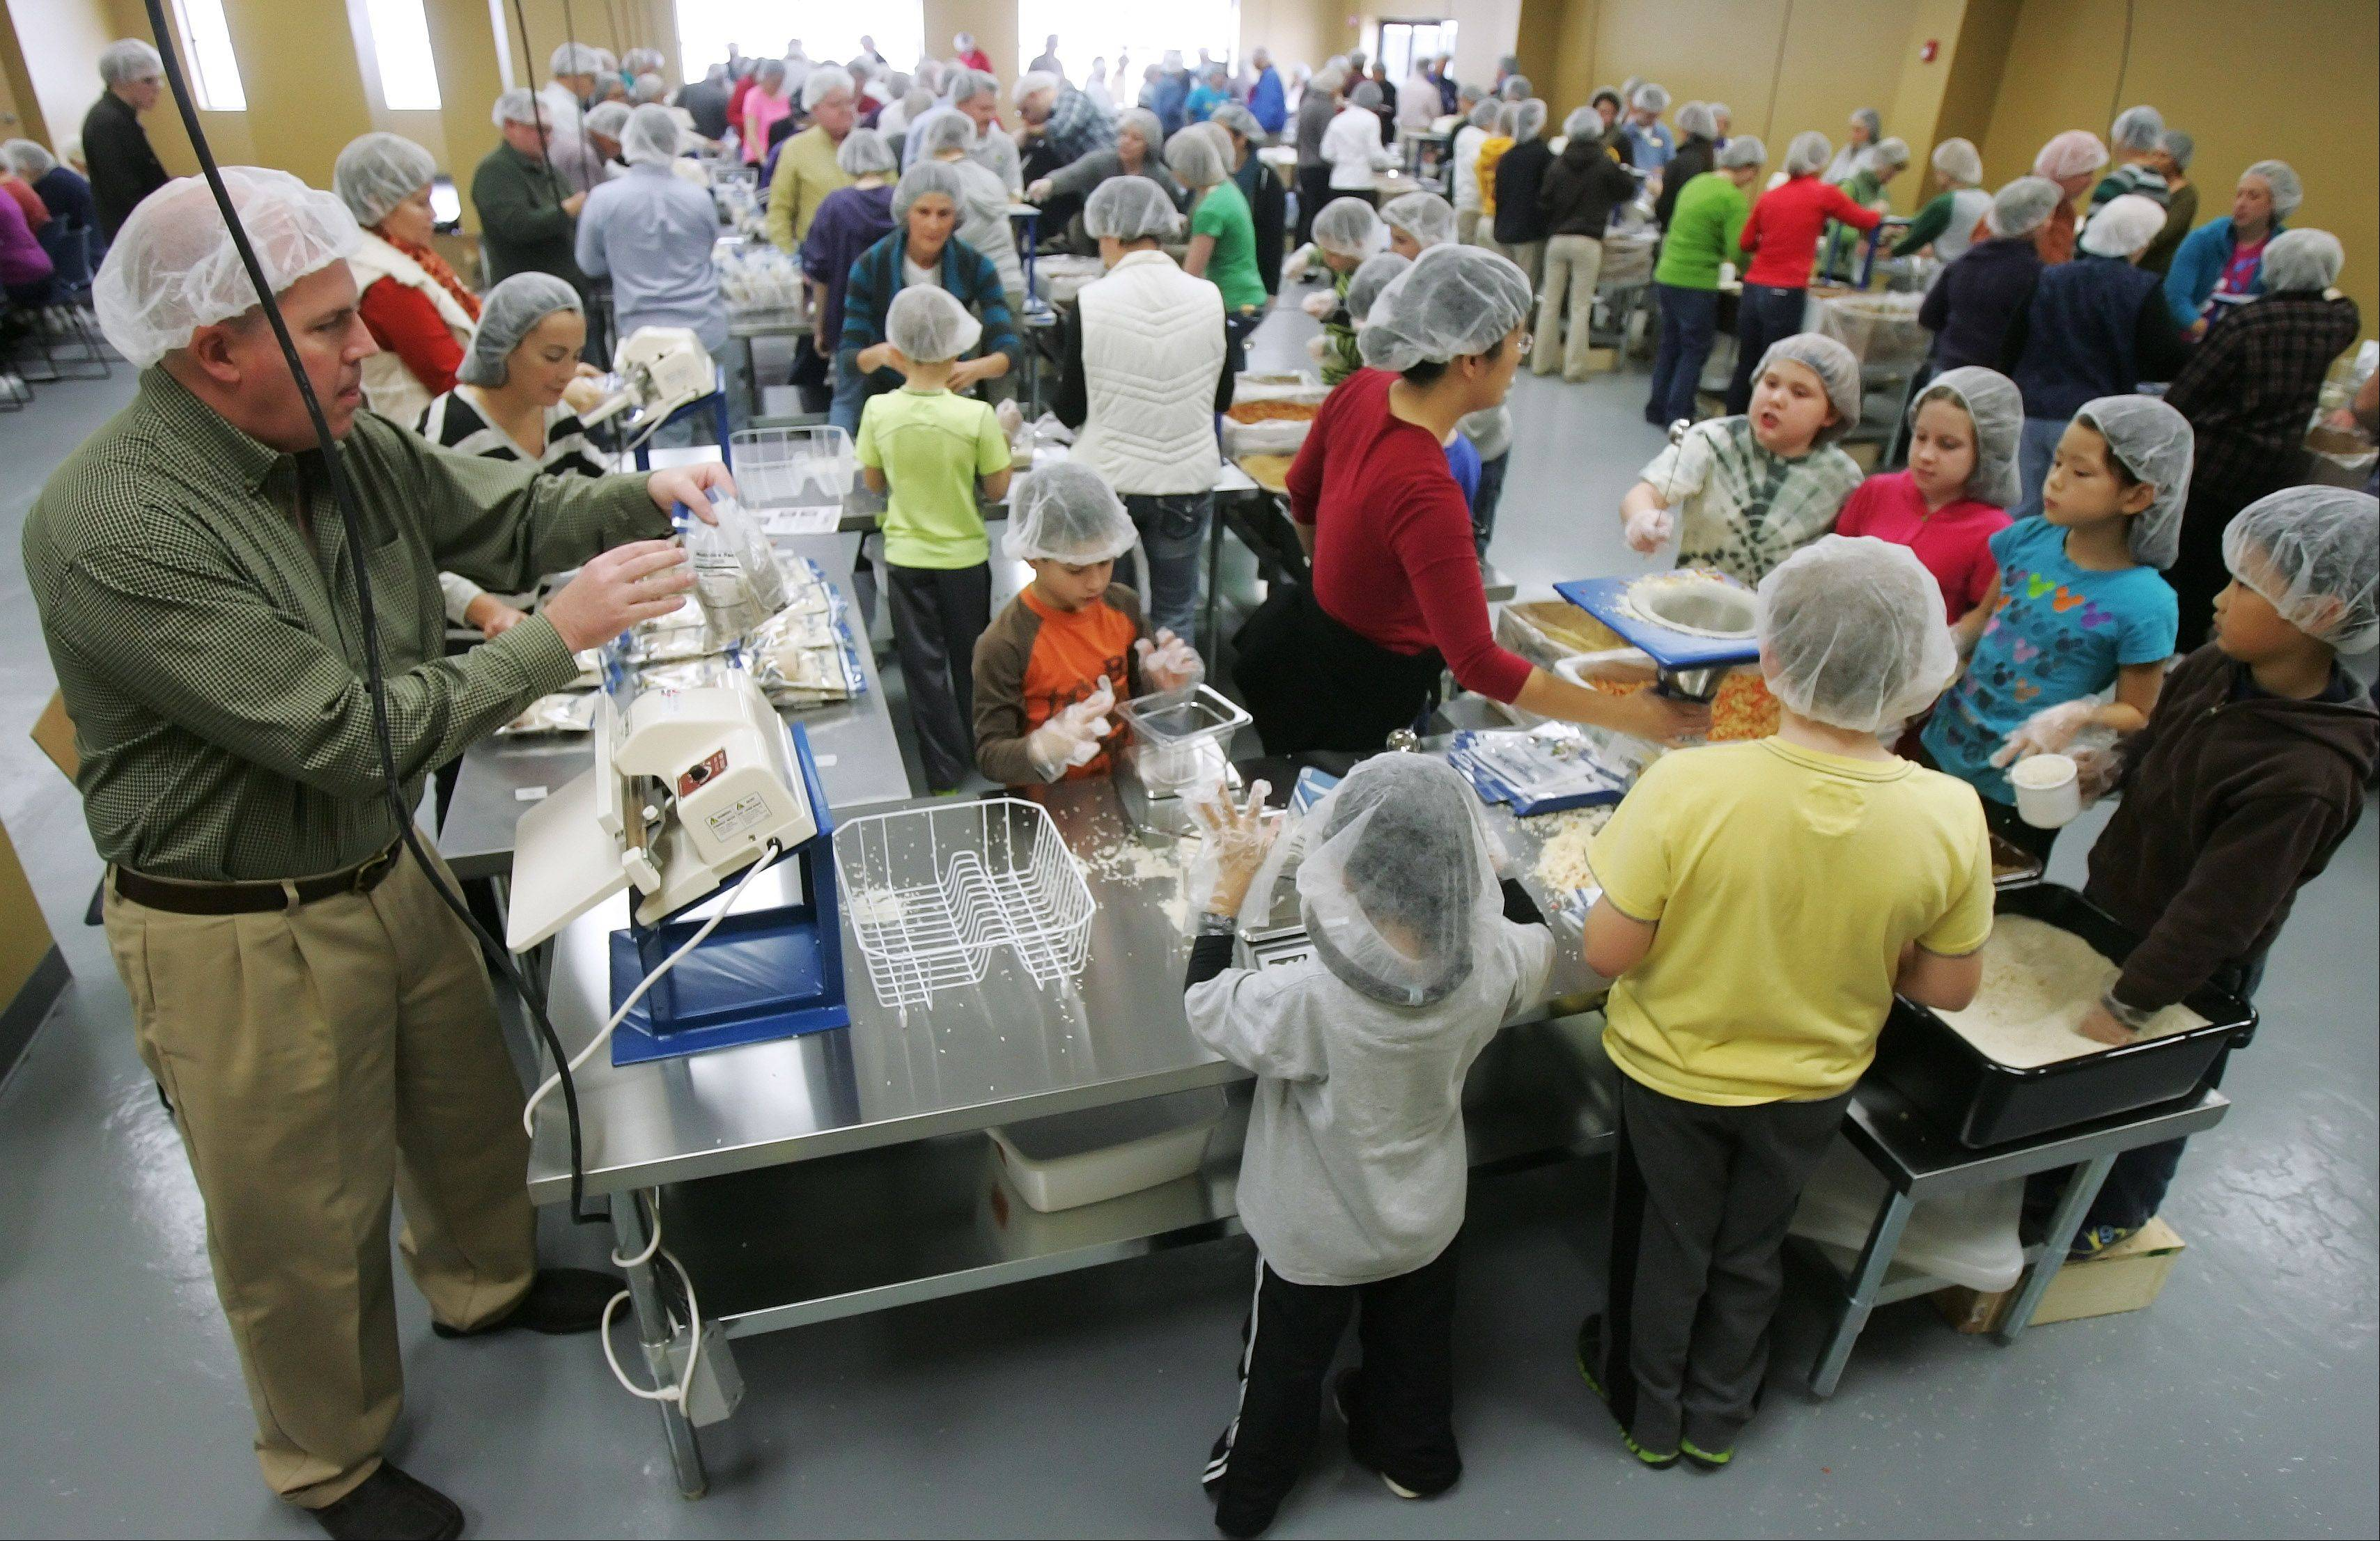 Volunteers work during the inaugural meal-packing session at Feed My Starving Children in Libertyville. The organization prepares millions of meals annually at the three Chicago area locations in Libertyville, Schaumburg and Aurora.